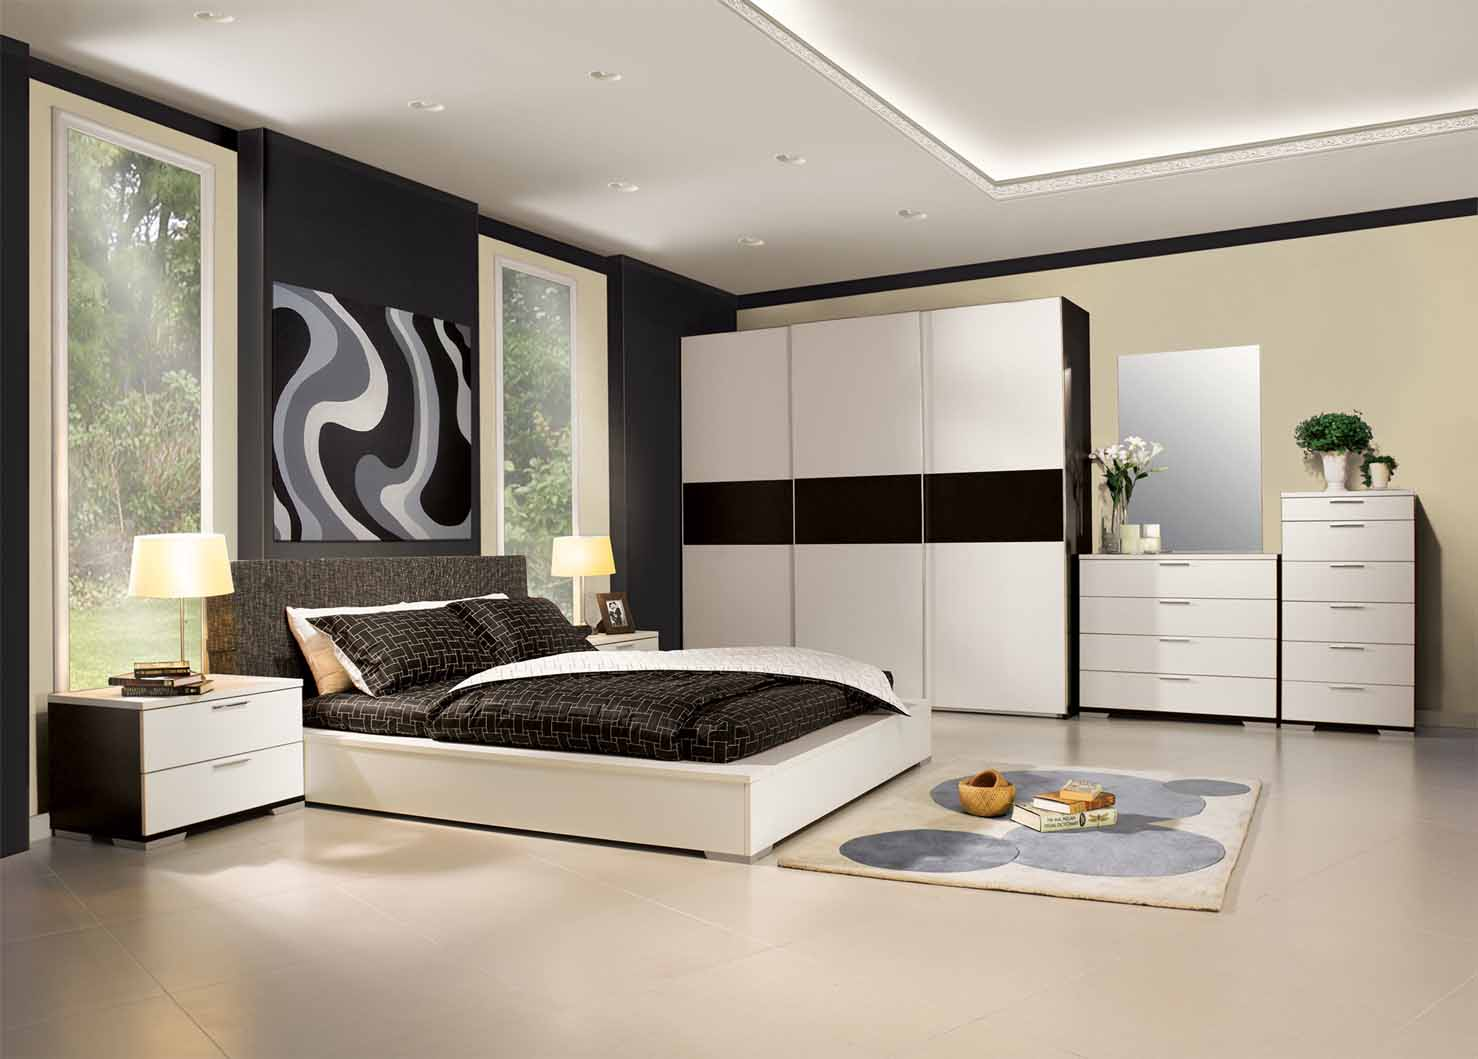 Home interior designs modern bedroom ideas for Bedroom decorating ideas and pictures